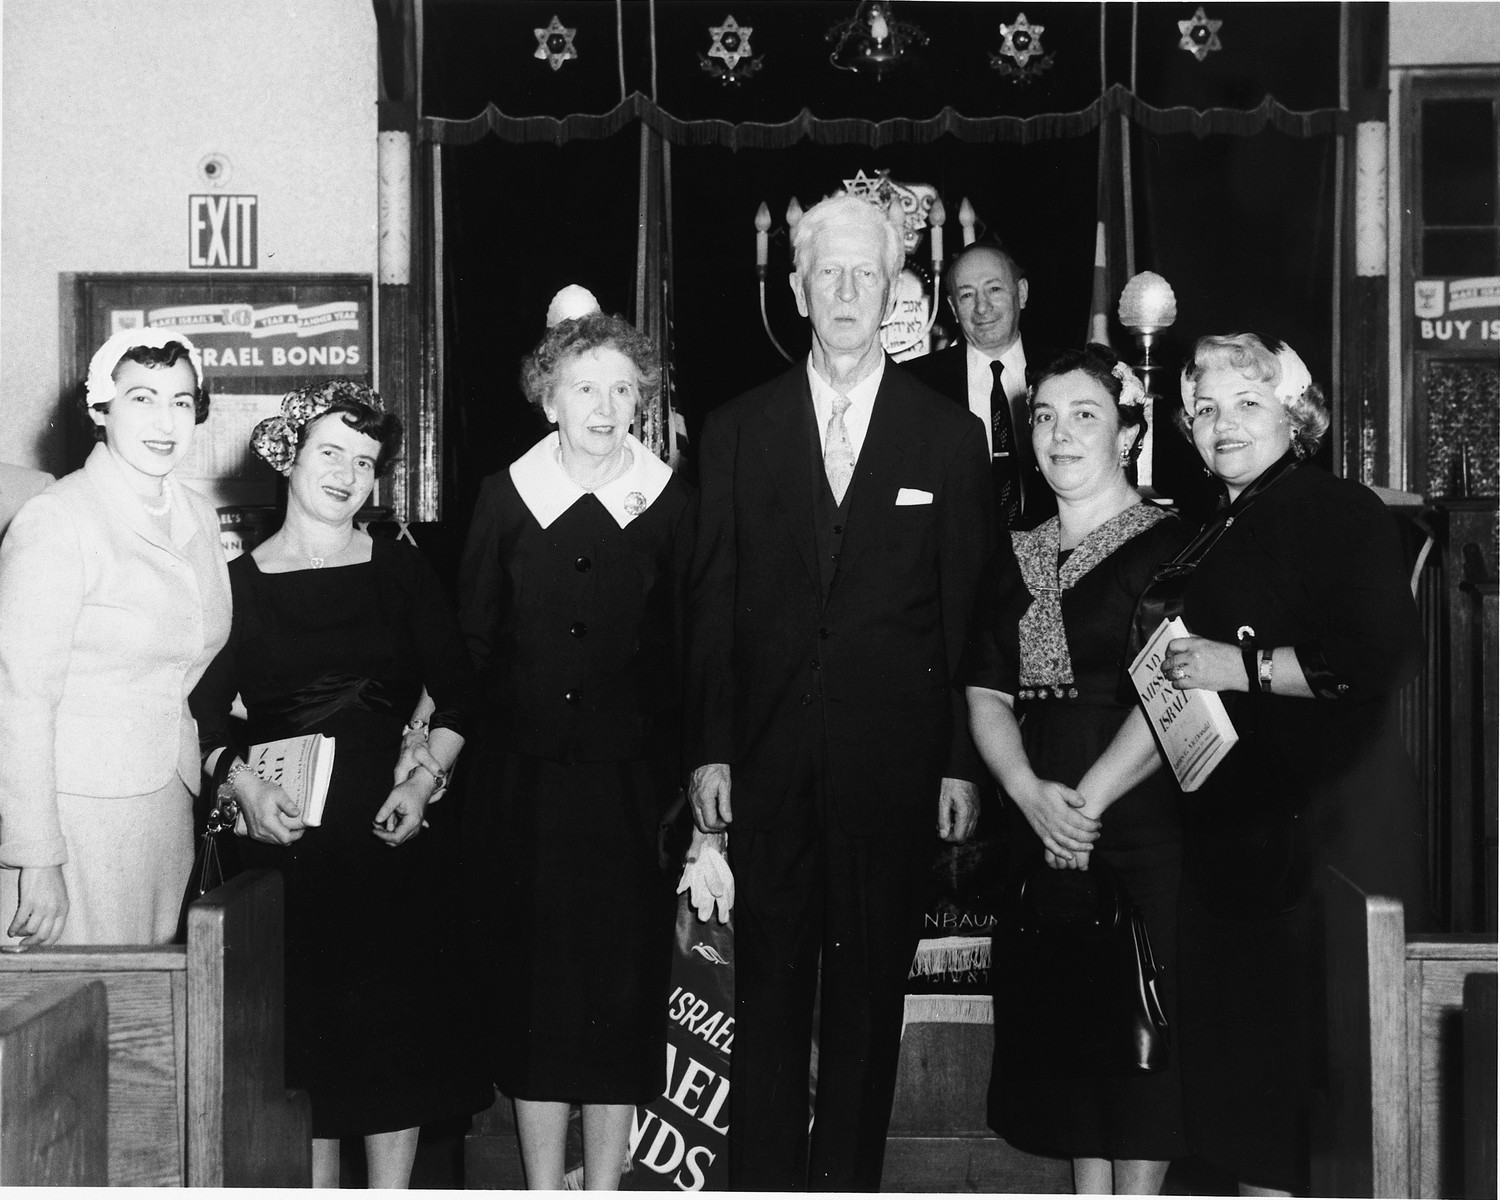 """U.S. Ambassador to Israel James G. McDonald (center) poses with his wife (third from the left) and four other women at a State of Israel bonds drive at a synagogue in the U.S.  Two of the women hold copies of McDonald's 1951 memoir, """"My Mission to Israel."""""""